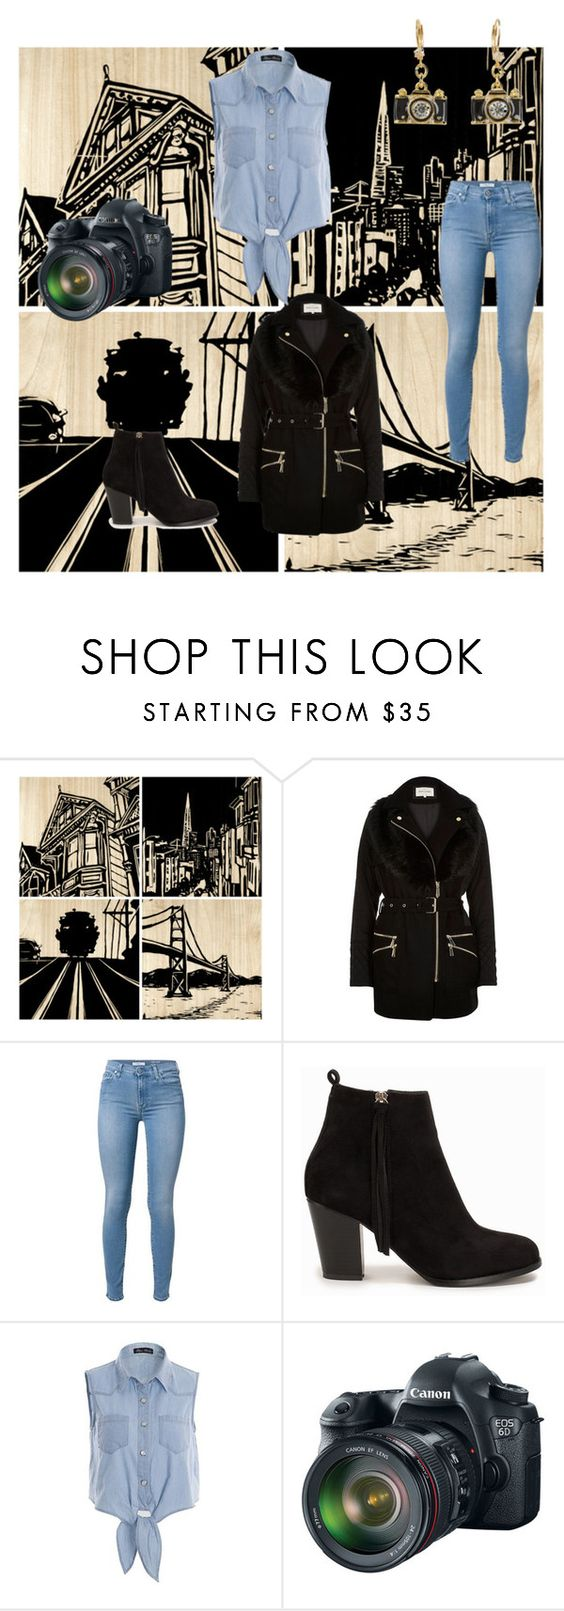 """§"" by yasies ❤ liked on Polyvore featuring Selamat Designs, River Island, Nly Shoes, Eos and Betsey Johnson"